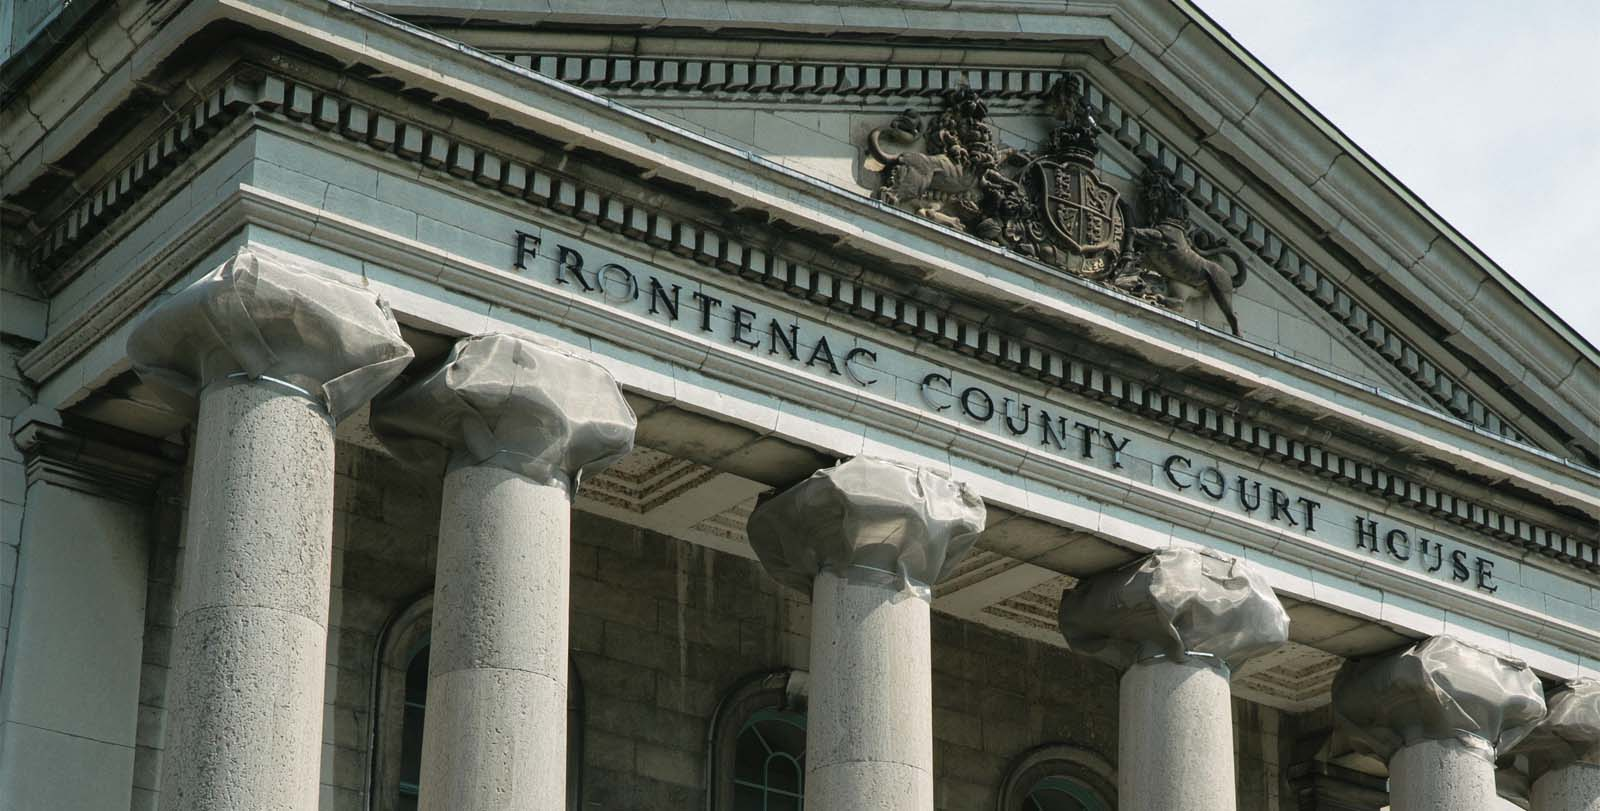 Kingston Court - Frontenac County Court House